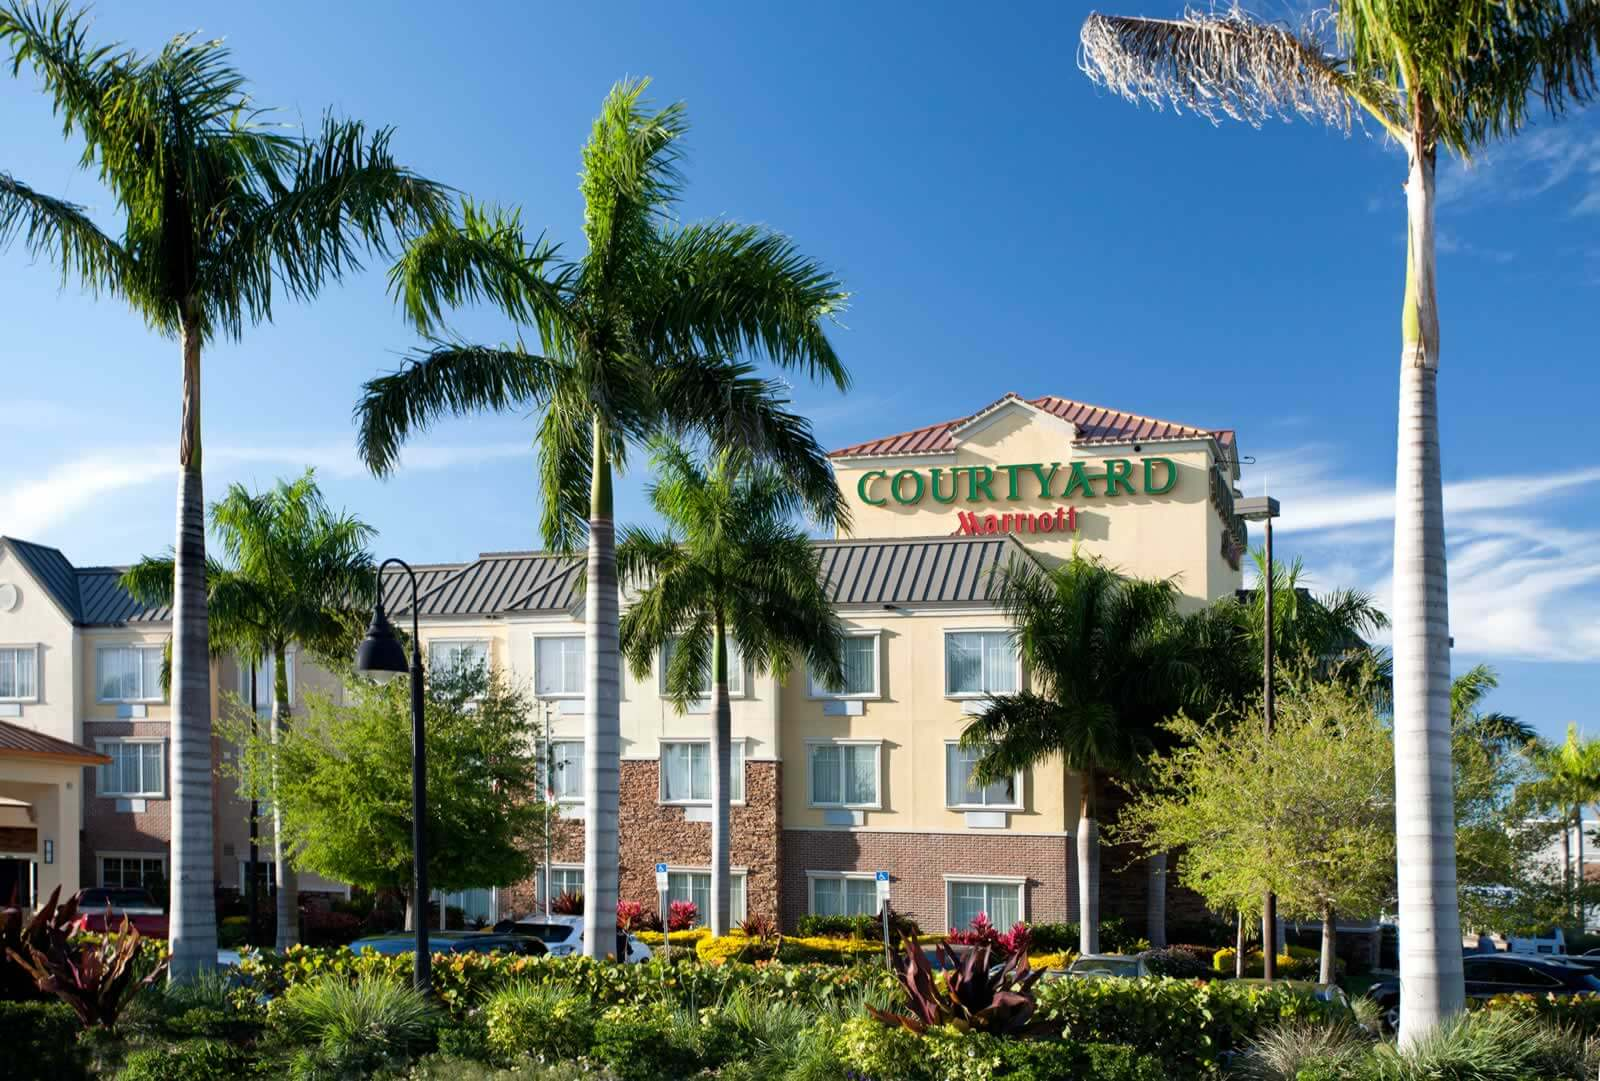 Courtyard By Marriott Interiors Wbrc Architects Engineers